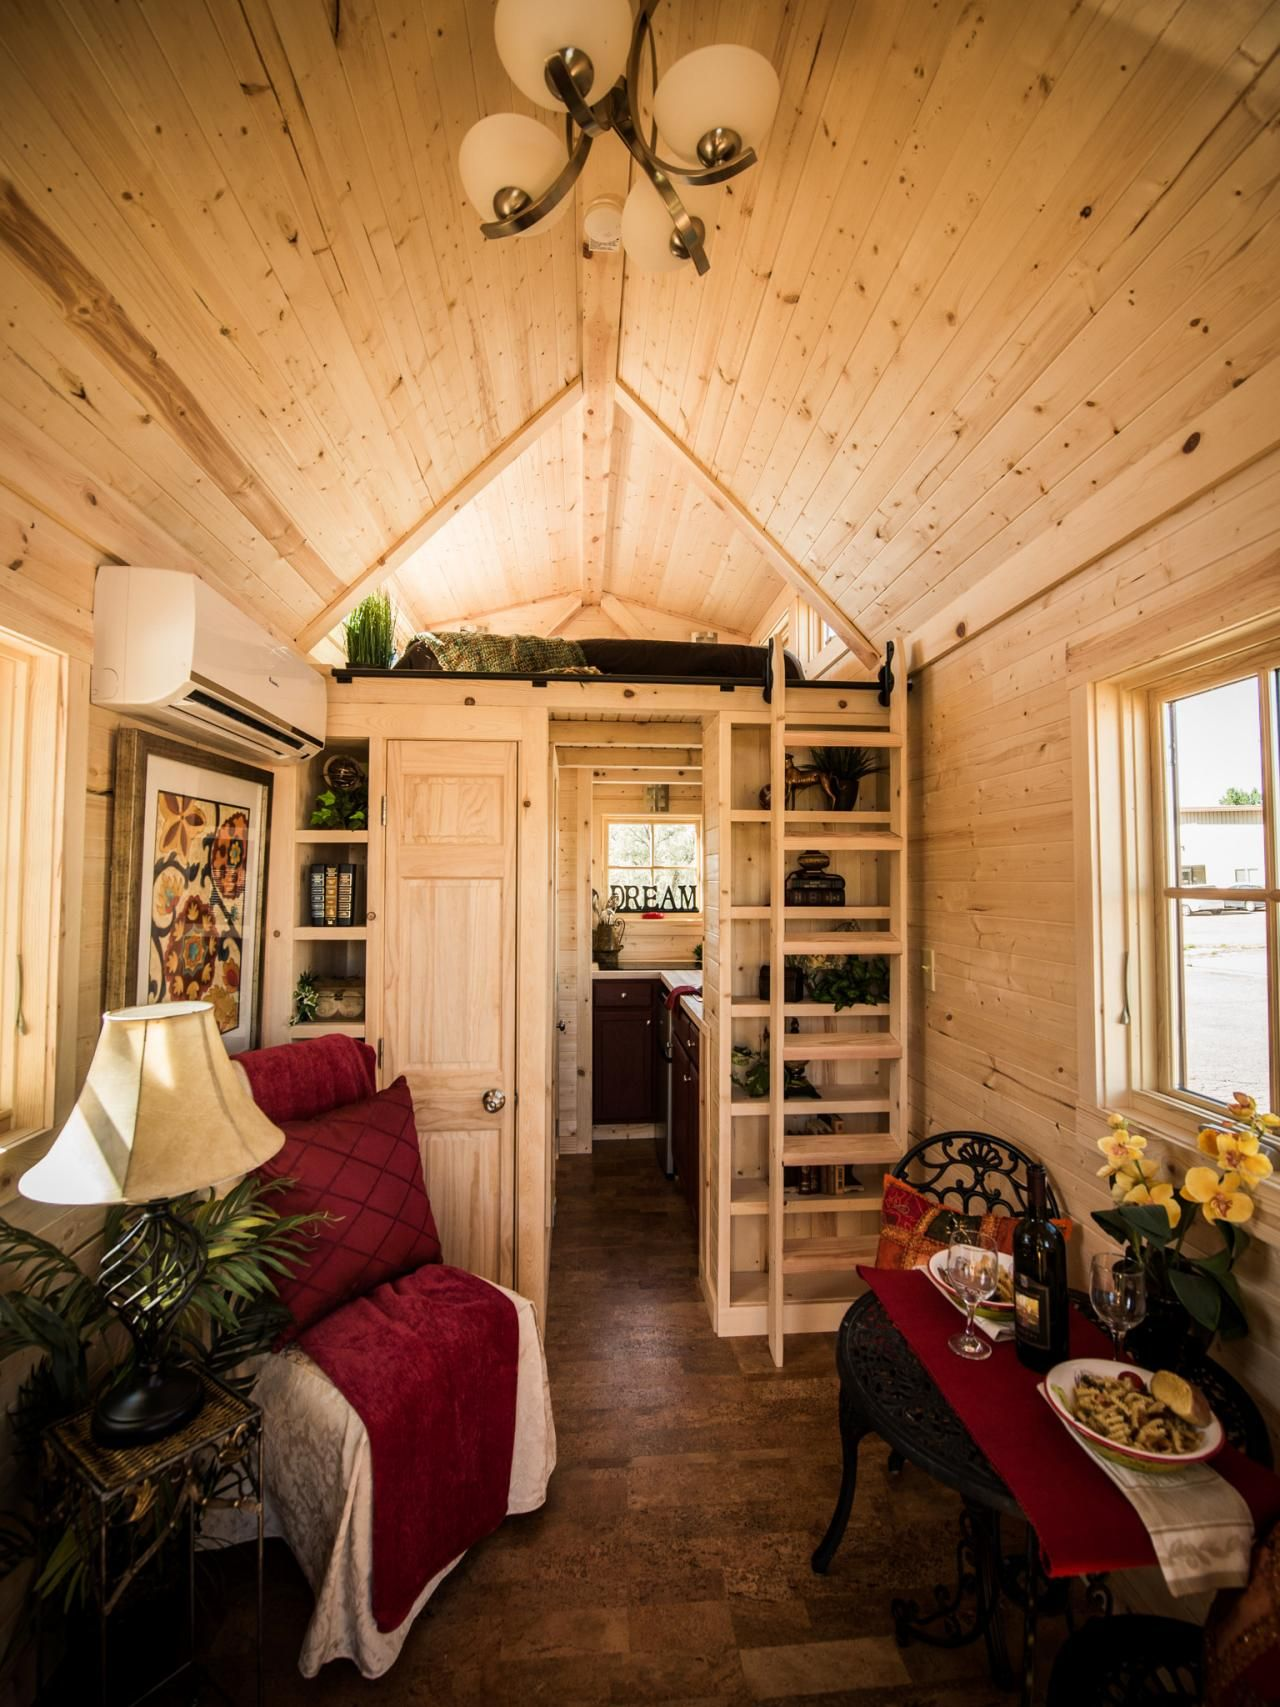 9 Times Tiny House Hunters Ers Forgot They Wanted To Downsize